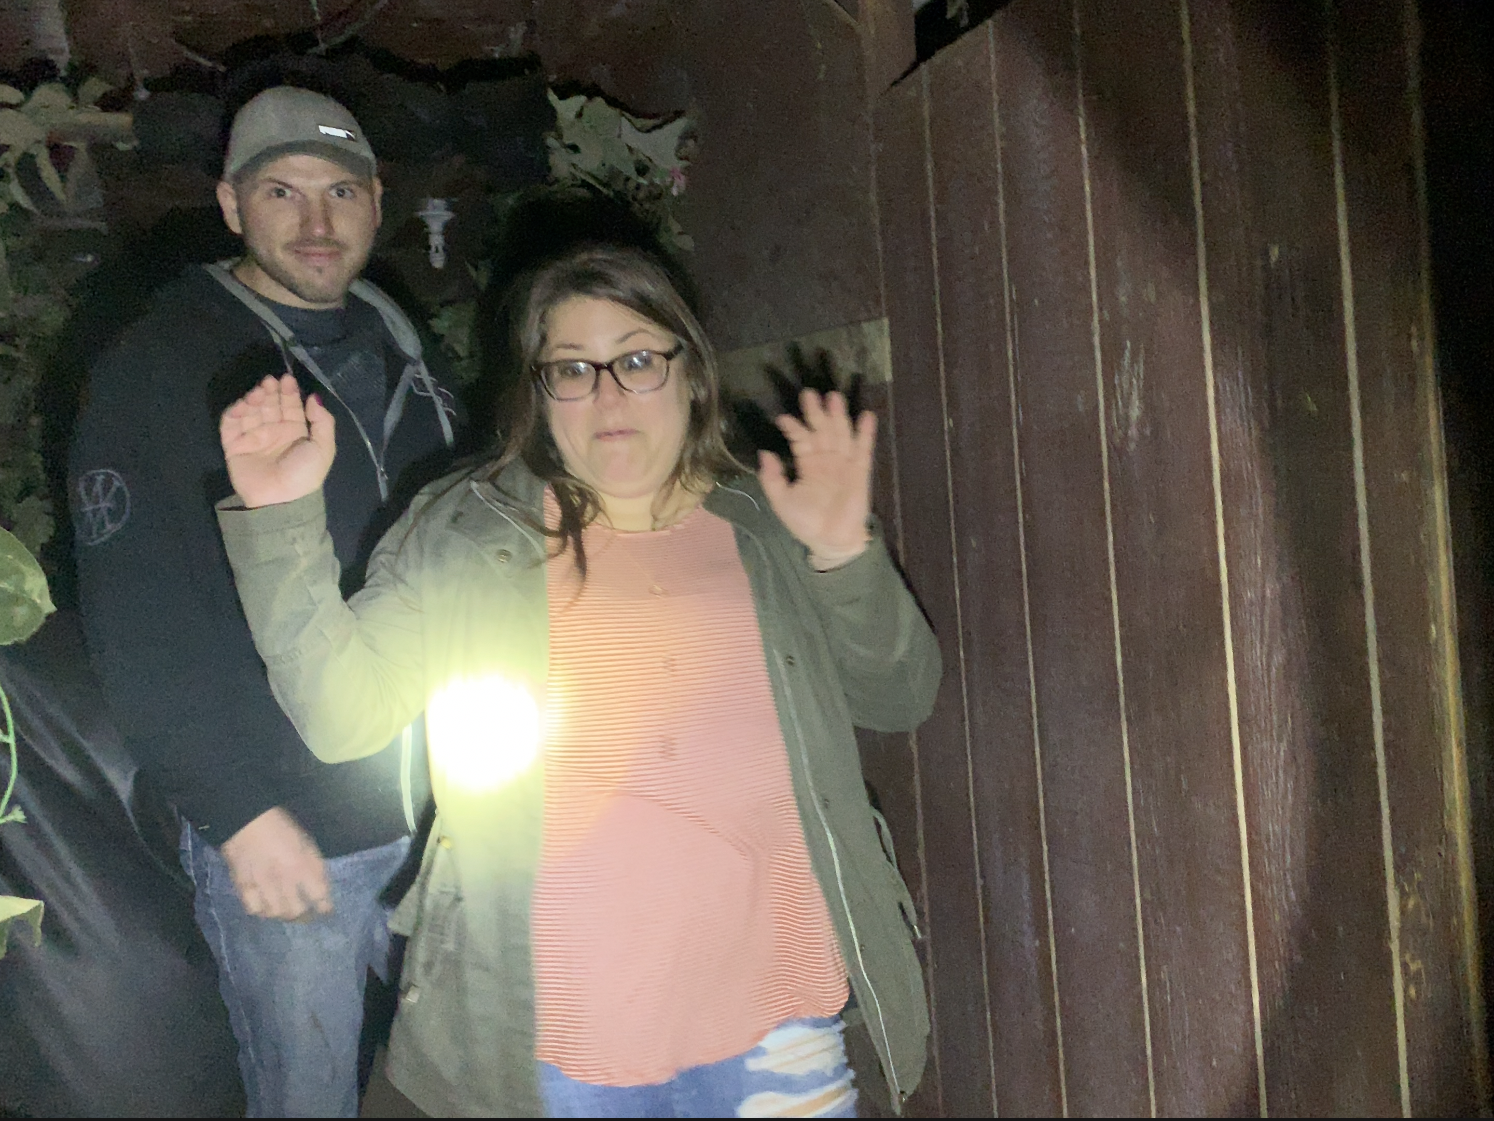 Scare-seekers get what they came for at Frightland on a Friday night